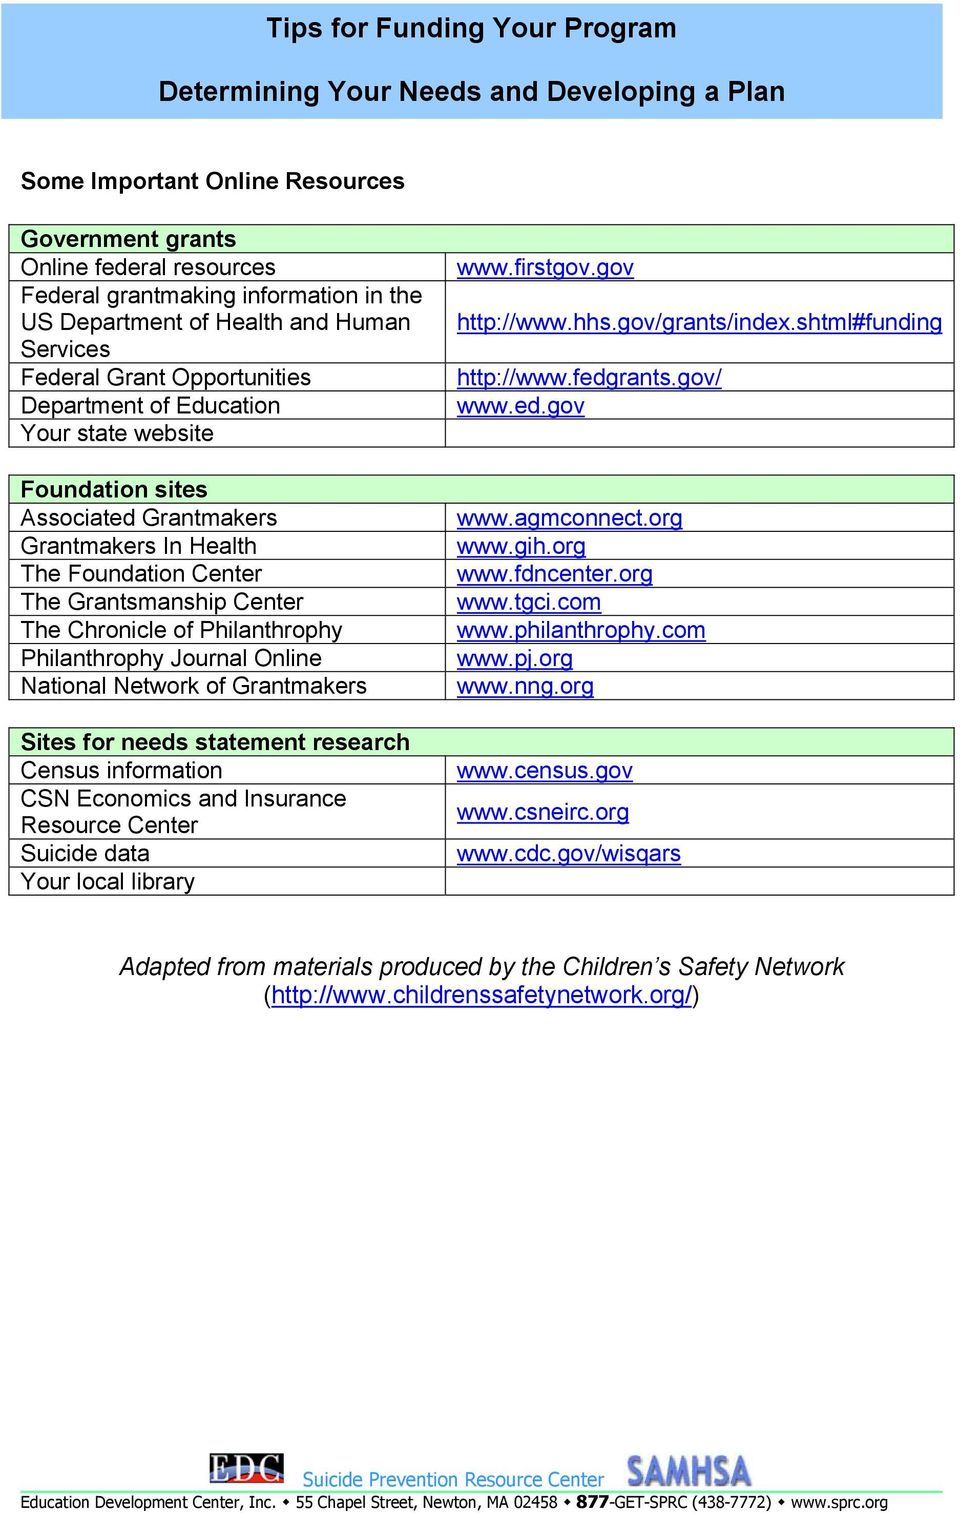 National Network of Grantmakers Sites for needs statement research Census information CSN Economics and Insurance Resource Center Suicide data Your local library www.firstgov.gov http://www.hhs.